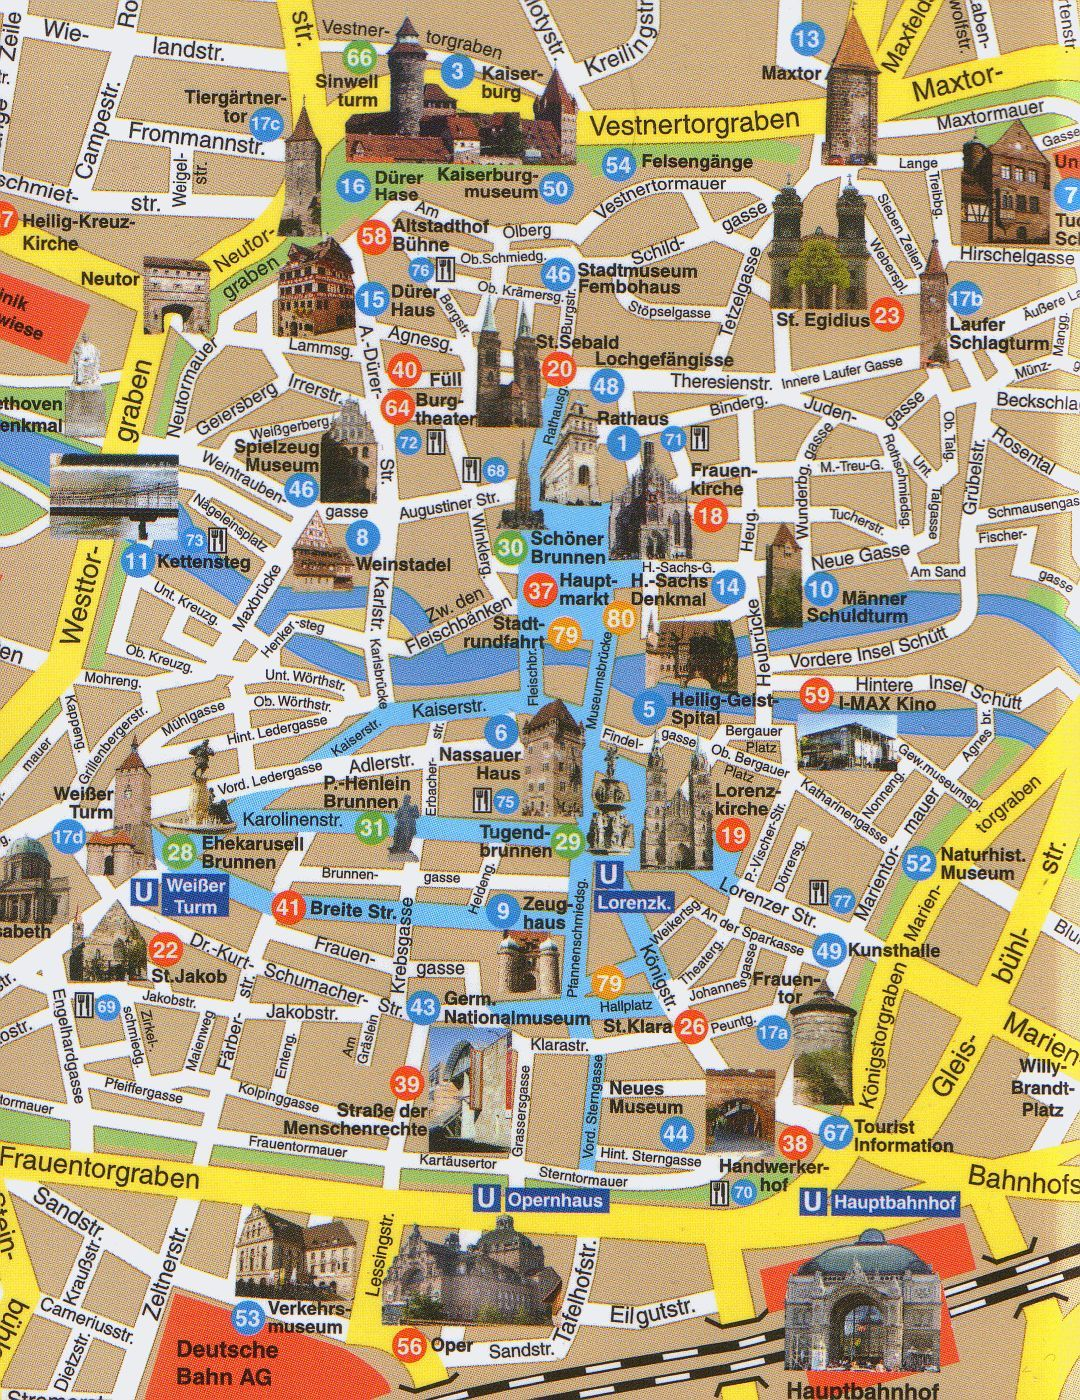 Map Of Germany Nuremberg.City Map Nuremberg Germany A Map To Get Around Nuremberg